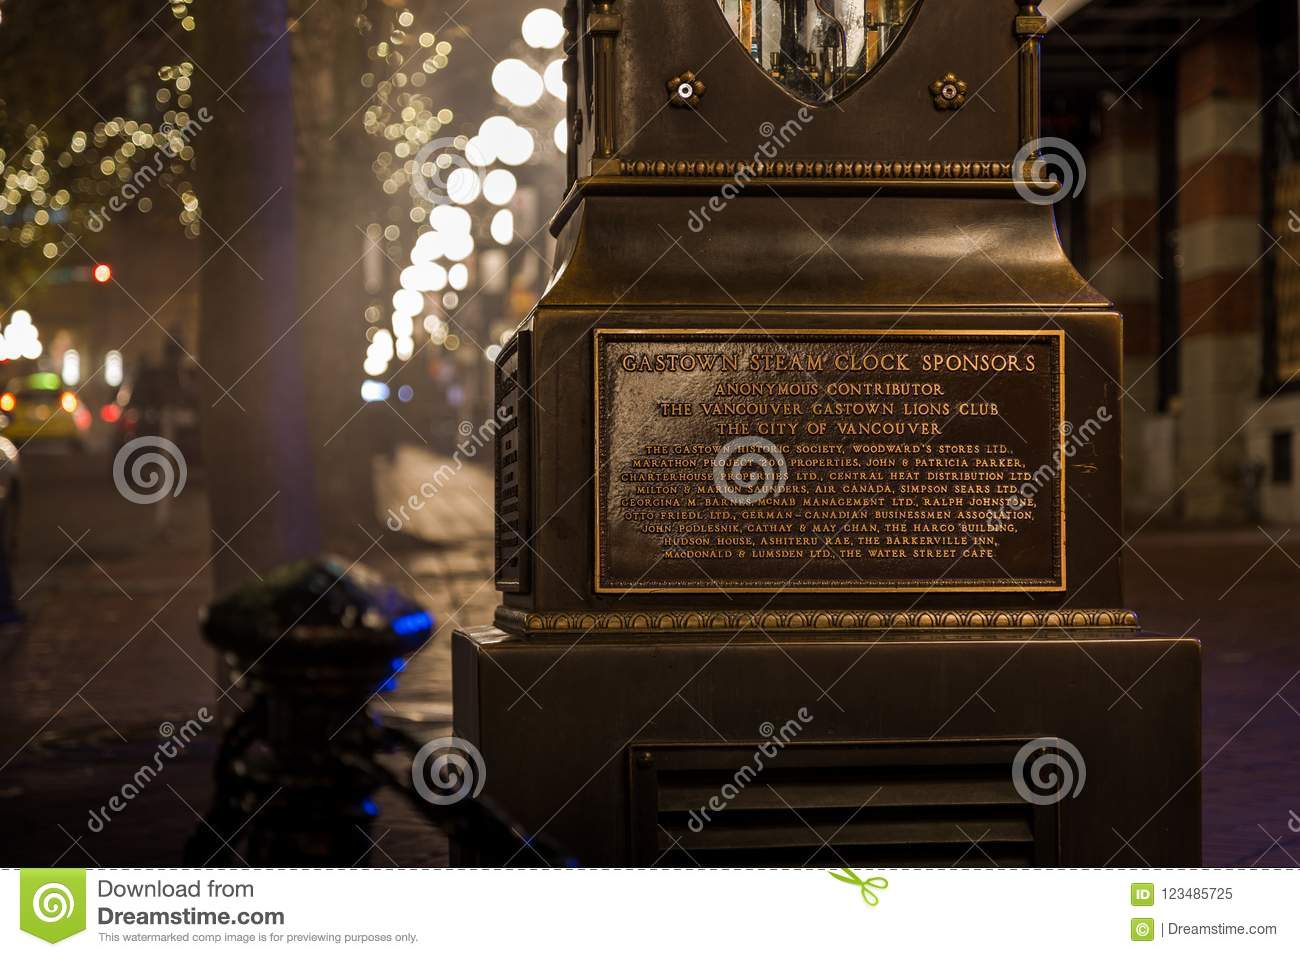 VANCOUVER, BC, CANADA - NOV 27, 2015: The old steam clock in Vancouver`s historic Gastown.